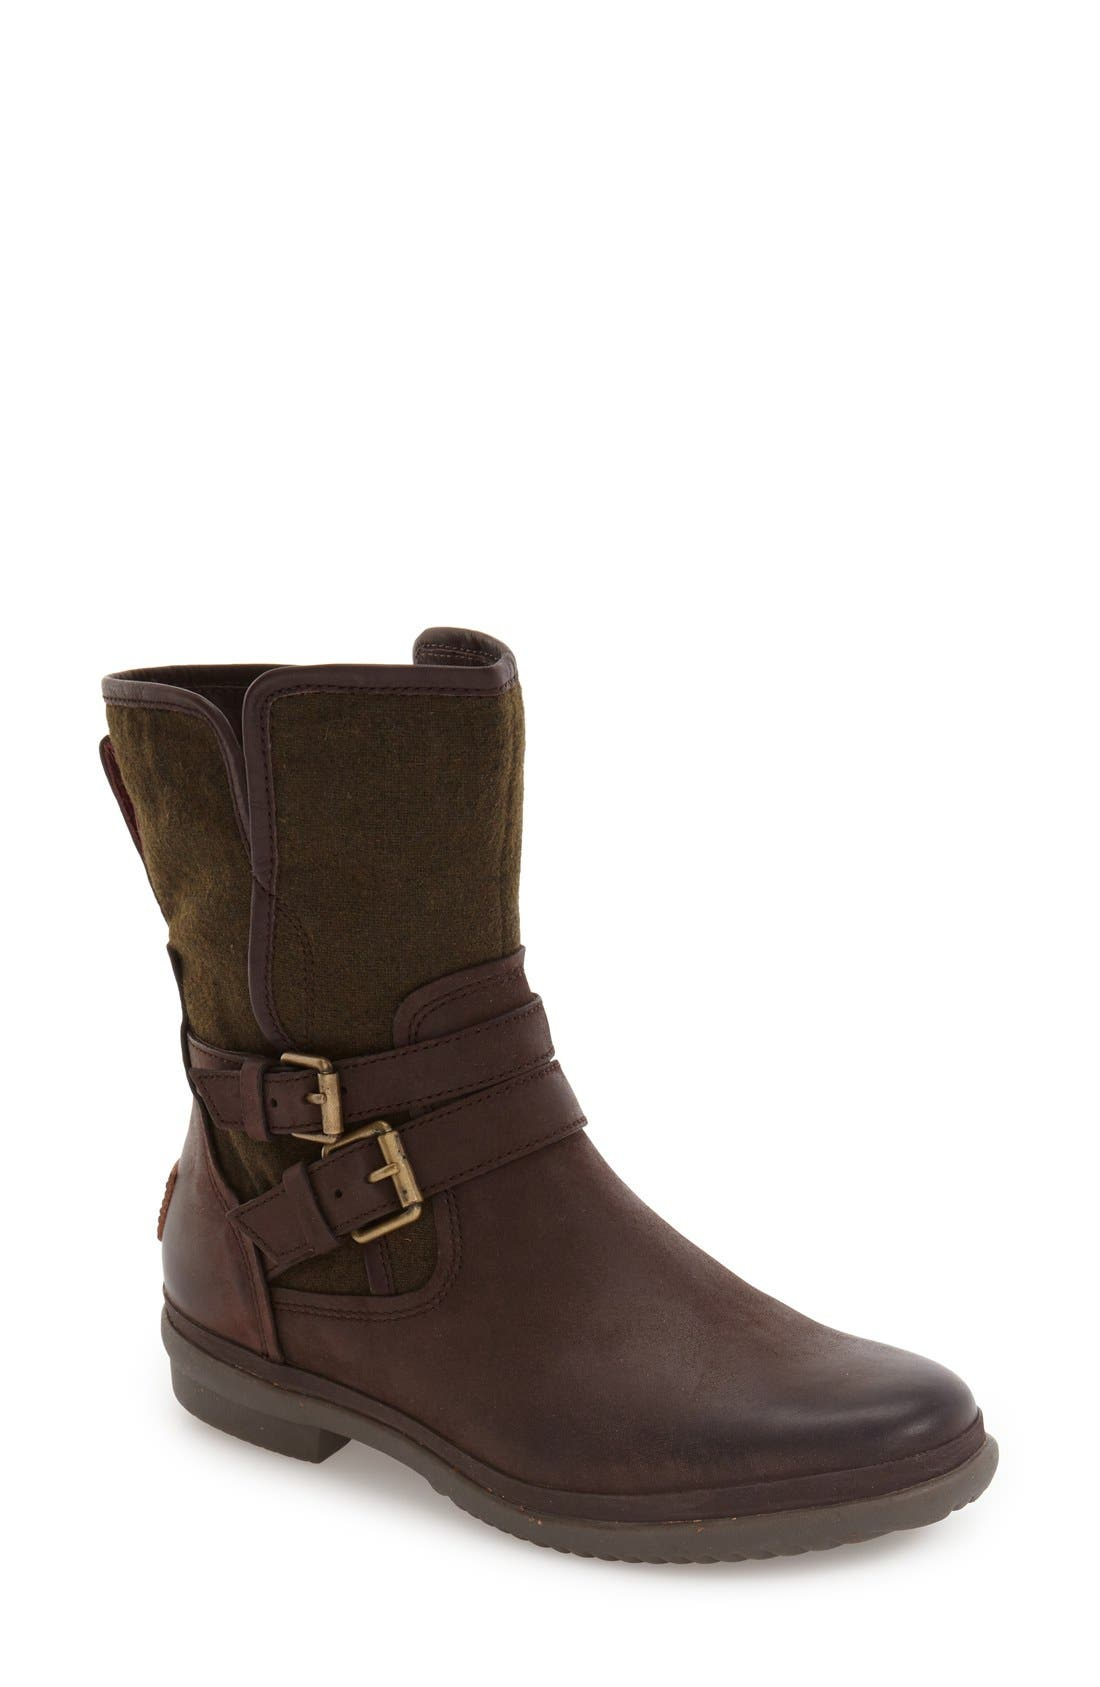 uggs simmens boots for women nz